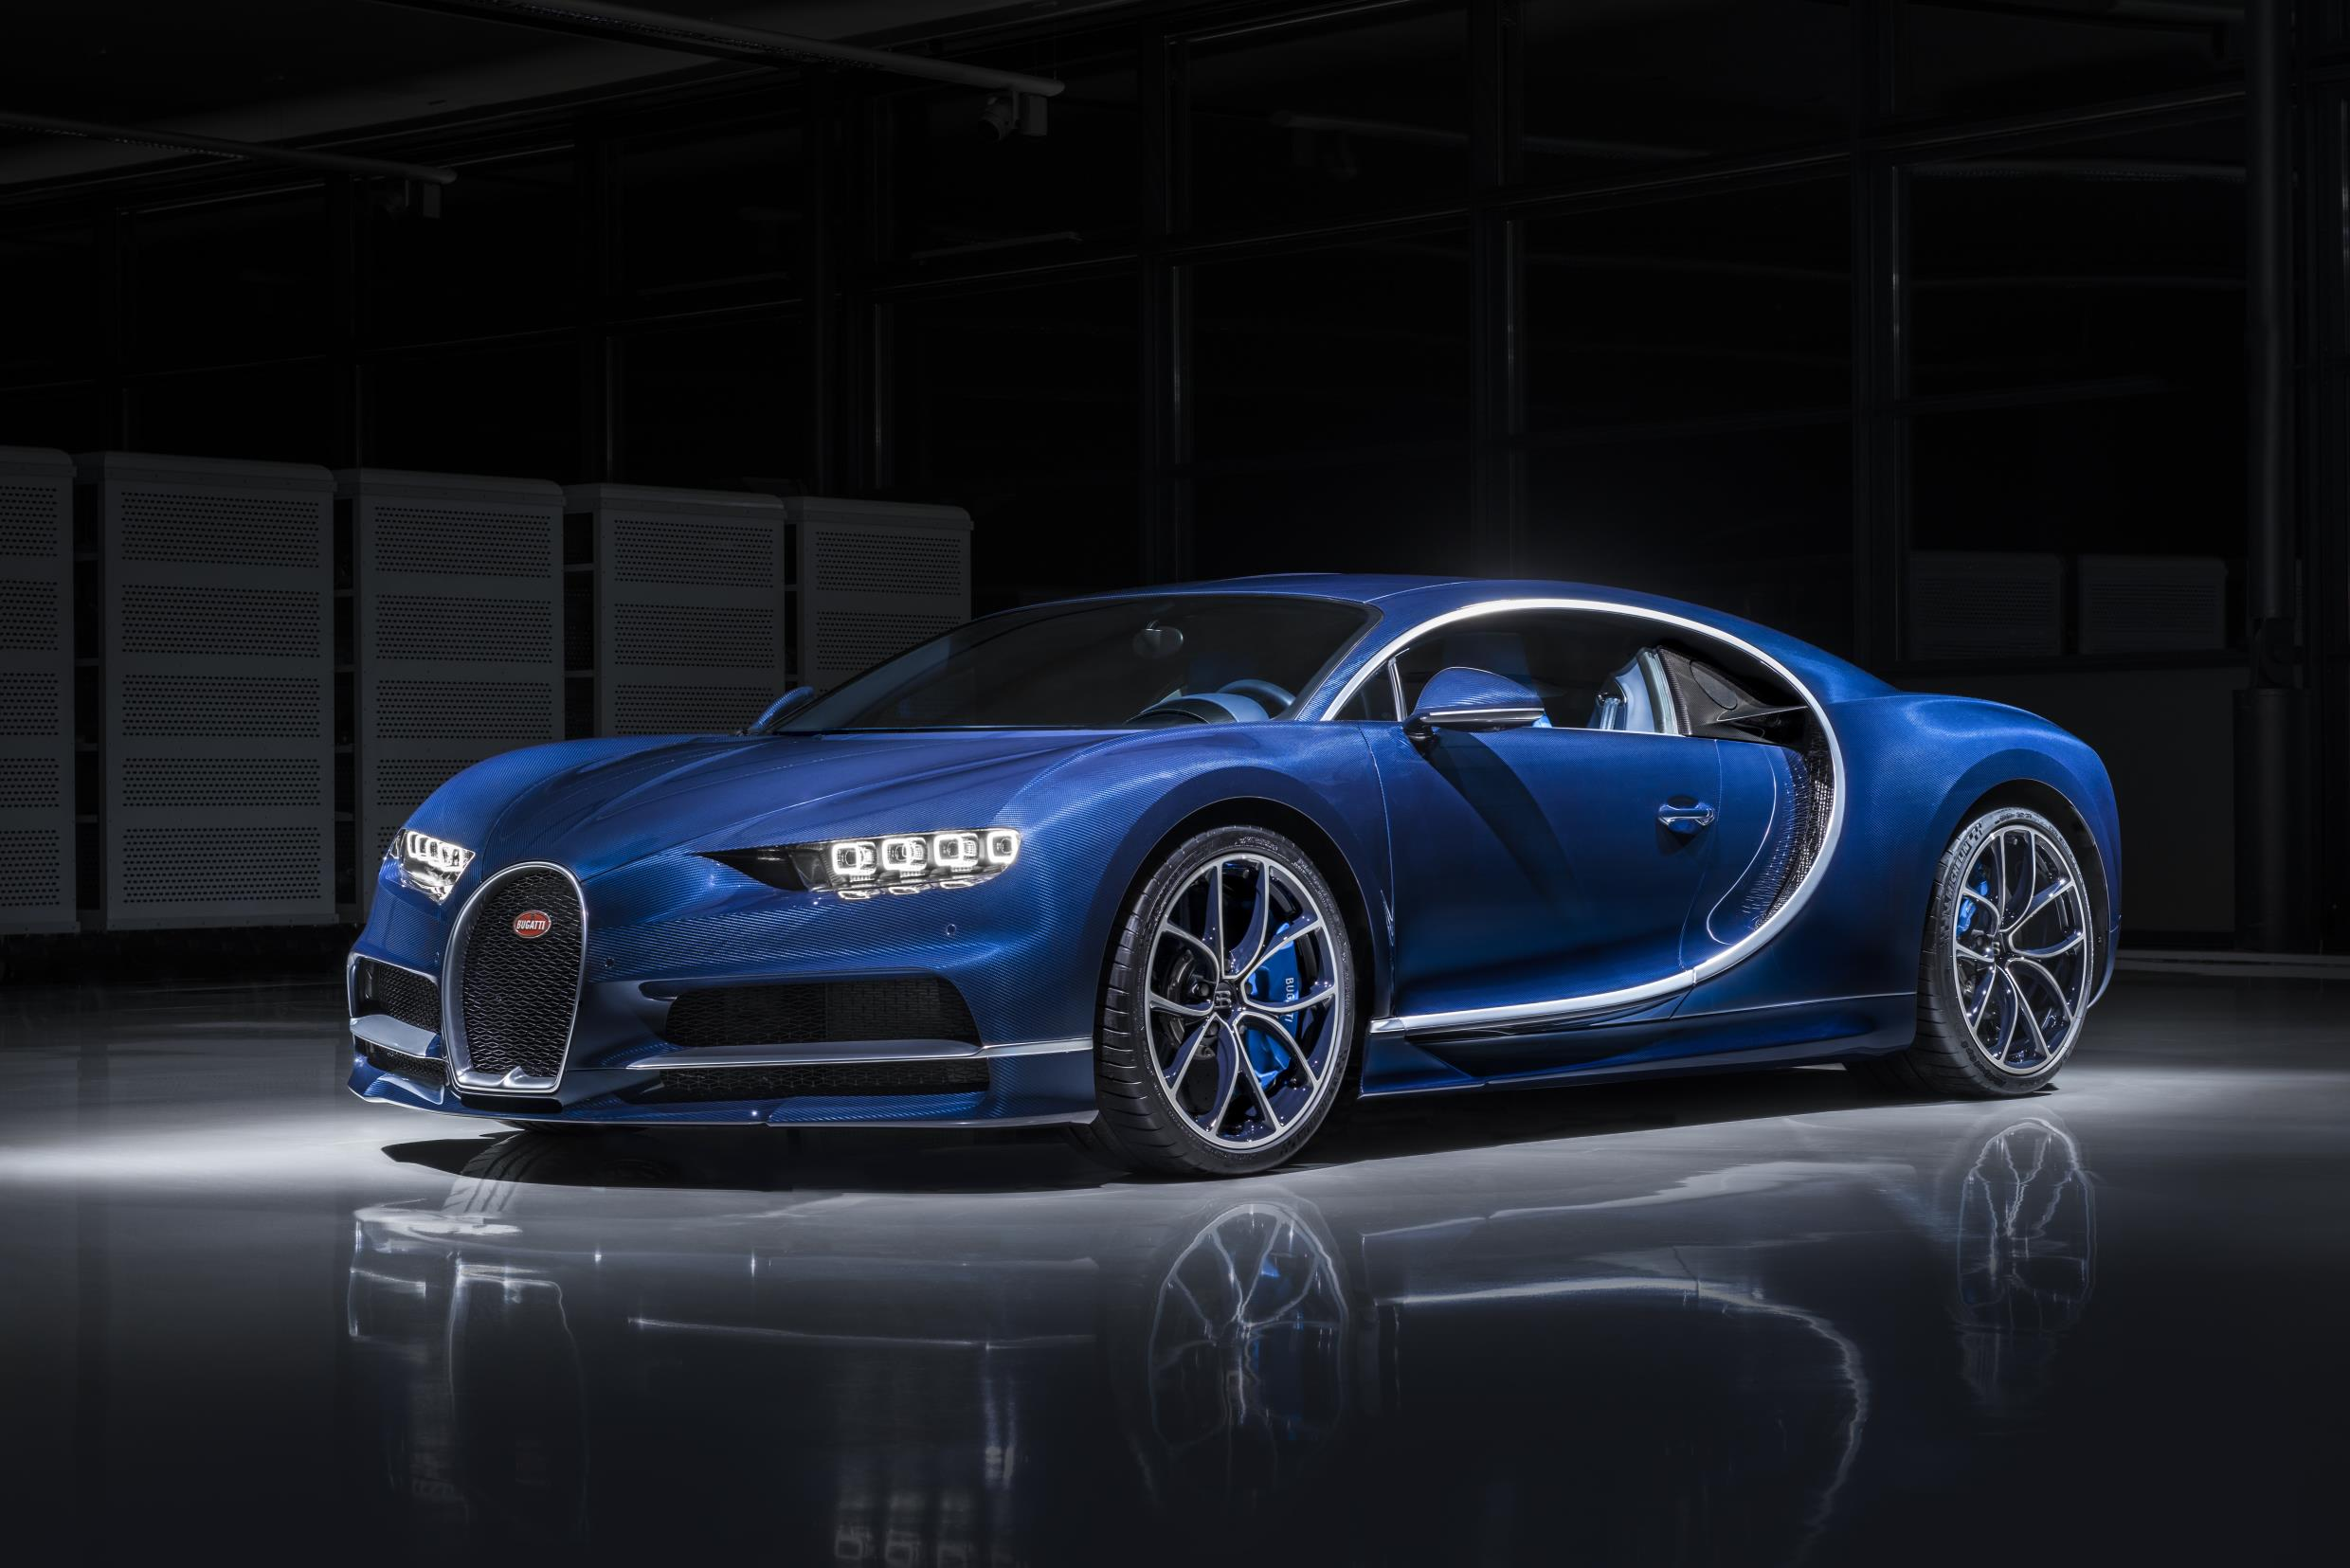 bugatti-chiron-does-not-escape-the-federalized-bumper-nightmare-it-looks-bad_1 Cozy Bugatti Veyron and Chiron Difference Cars Trend